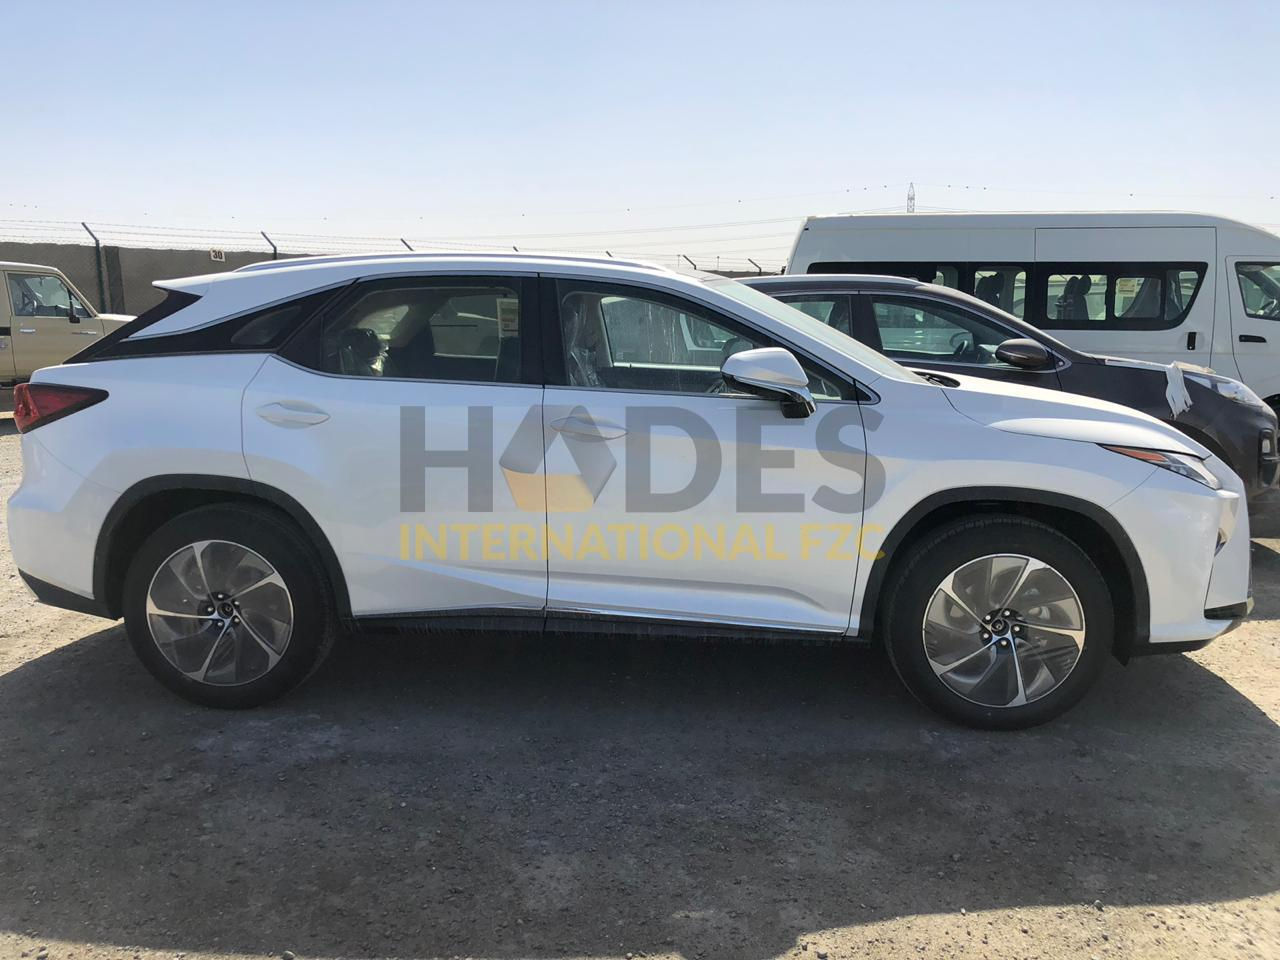 Lexus RX 350 V6, 4×4,Panoramic, Platinum No1 2020 model